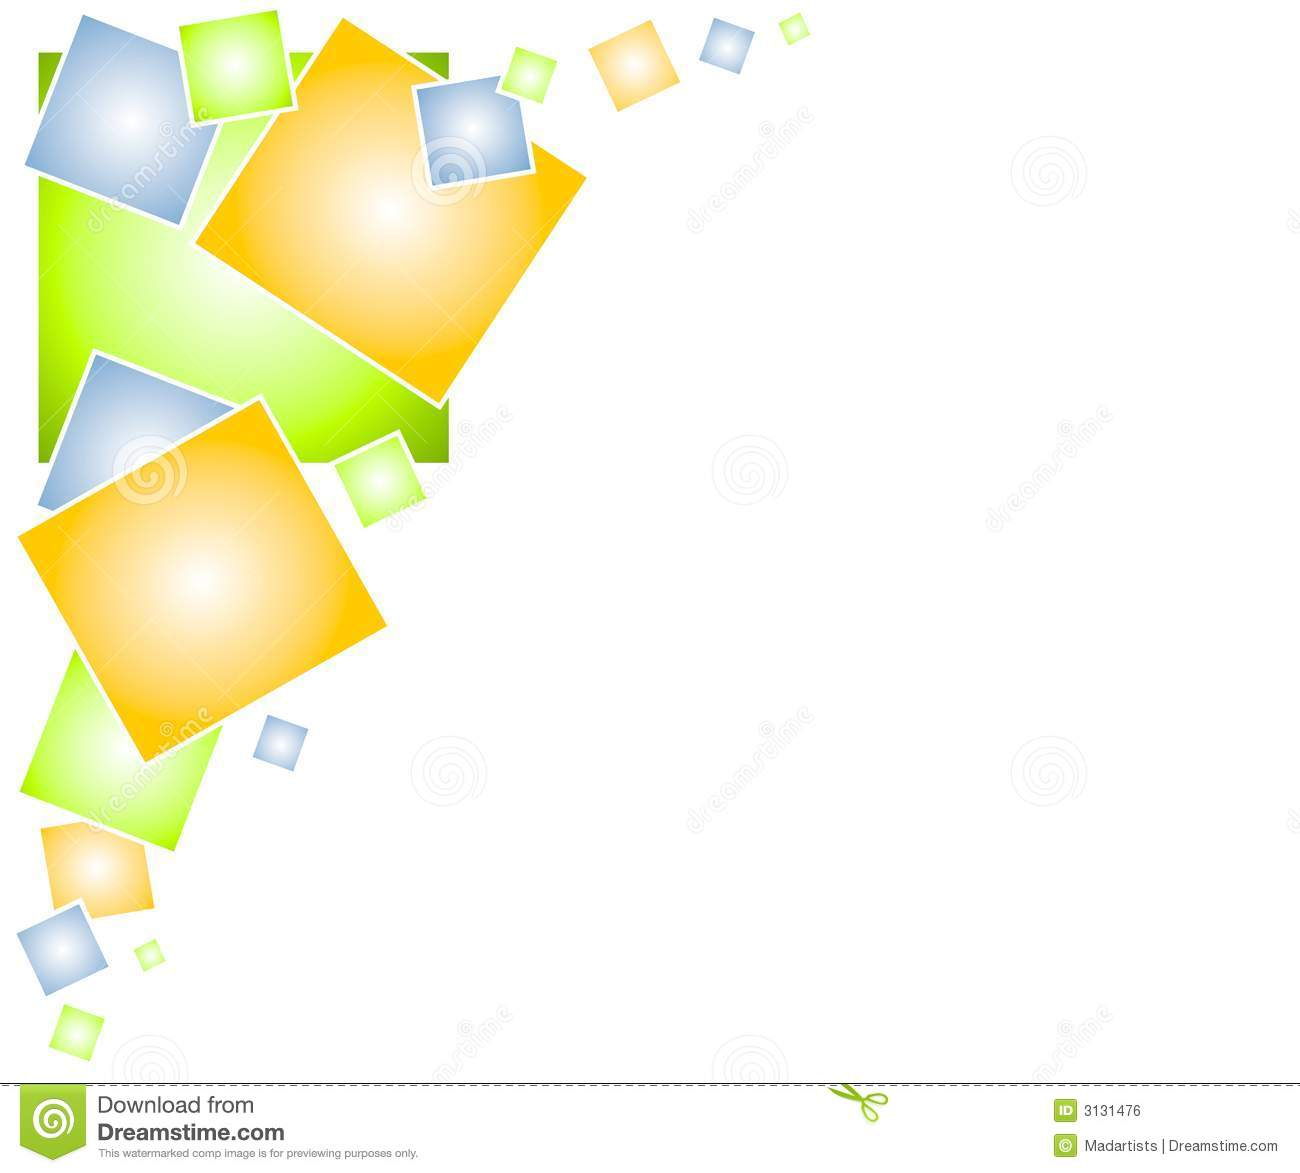 Squares web page background 2 stock illustration for Fond de plan gratuit